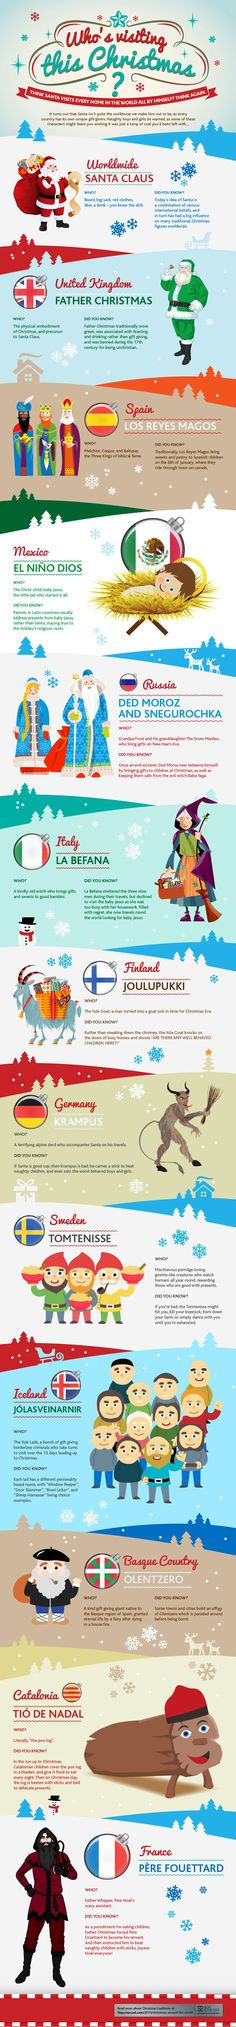 Santas from Around the World Infographic. Topic: santa claus, christmas, holiday